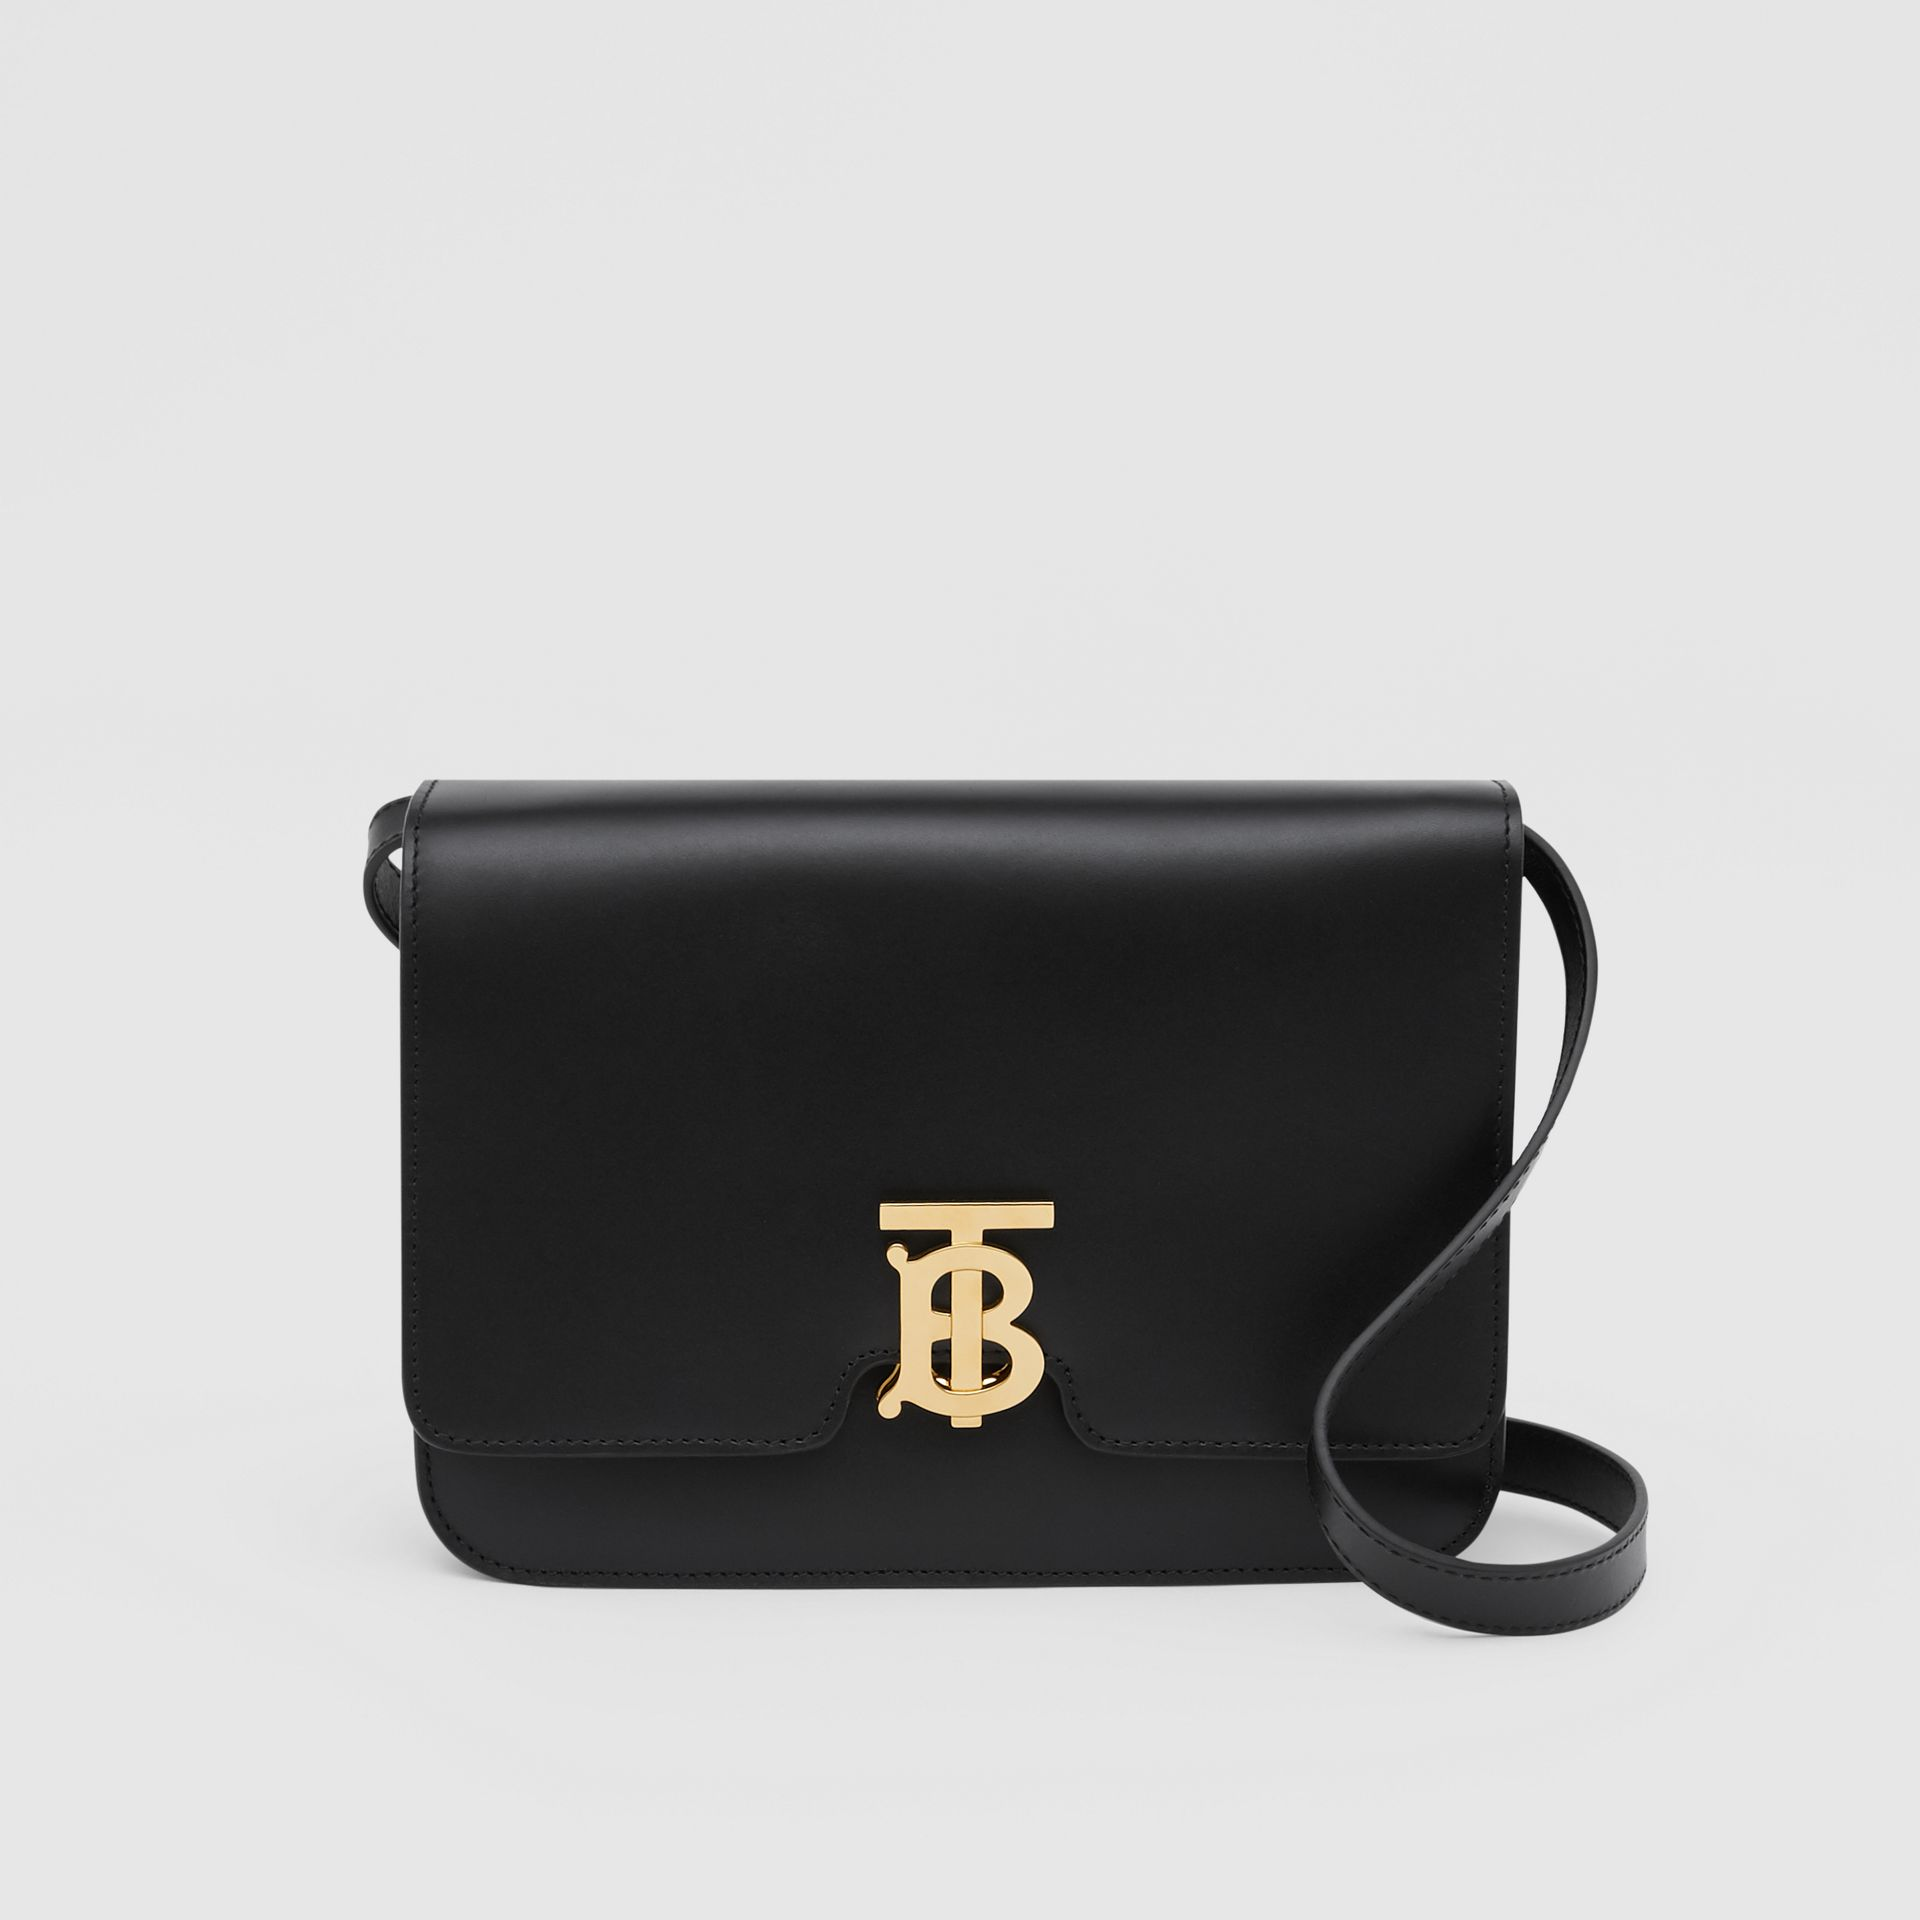 Medium Leather TB Bag in Black - Women | Burberry United Kingdom - gallery image 0